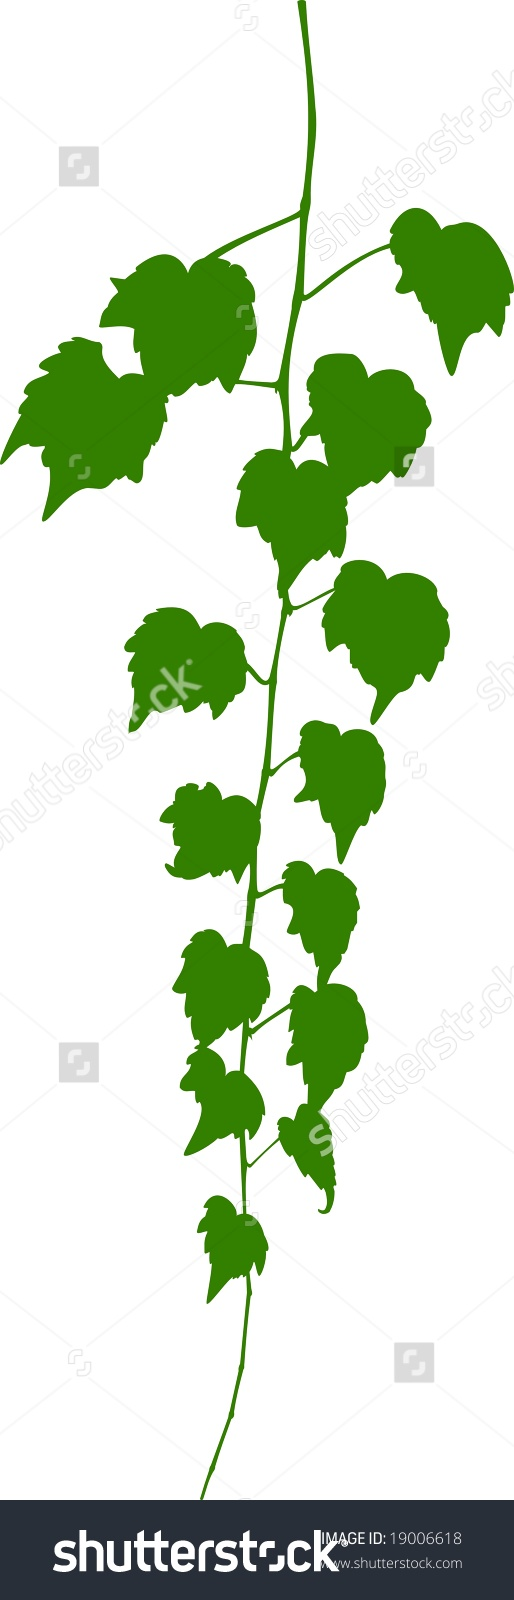 Green Virginia Creeper Vector Stock Vector 19006618.